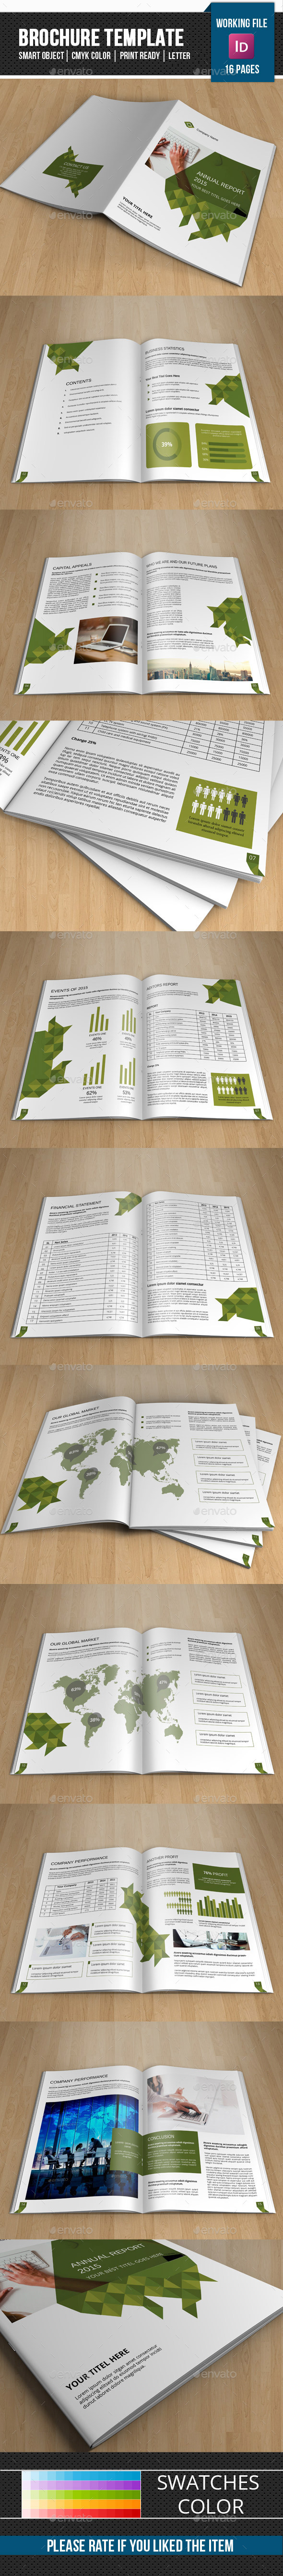 Annual Report Brochure-V284 - Corporate Brochures